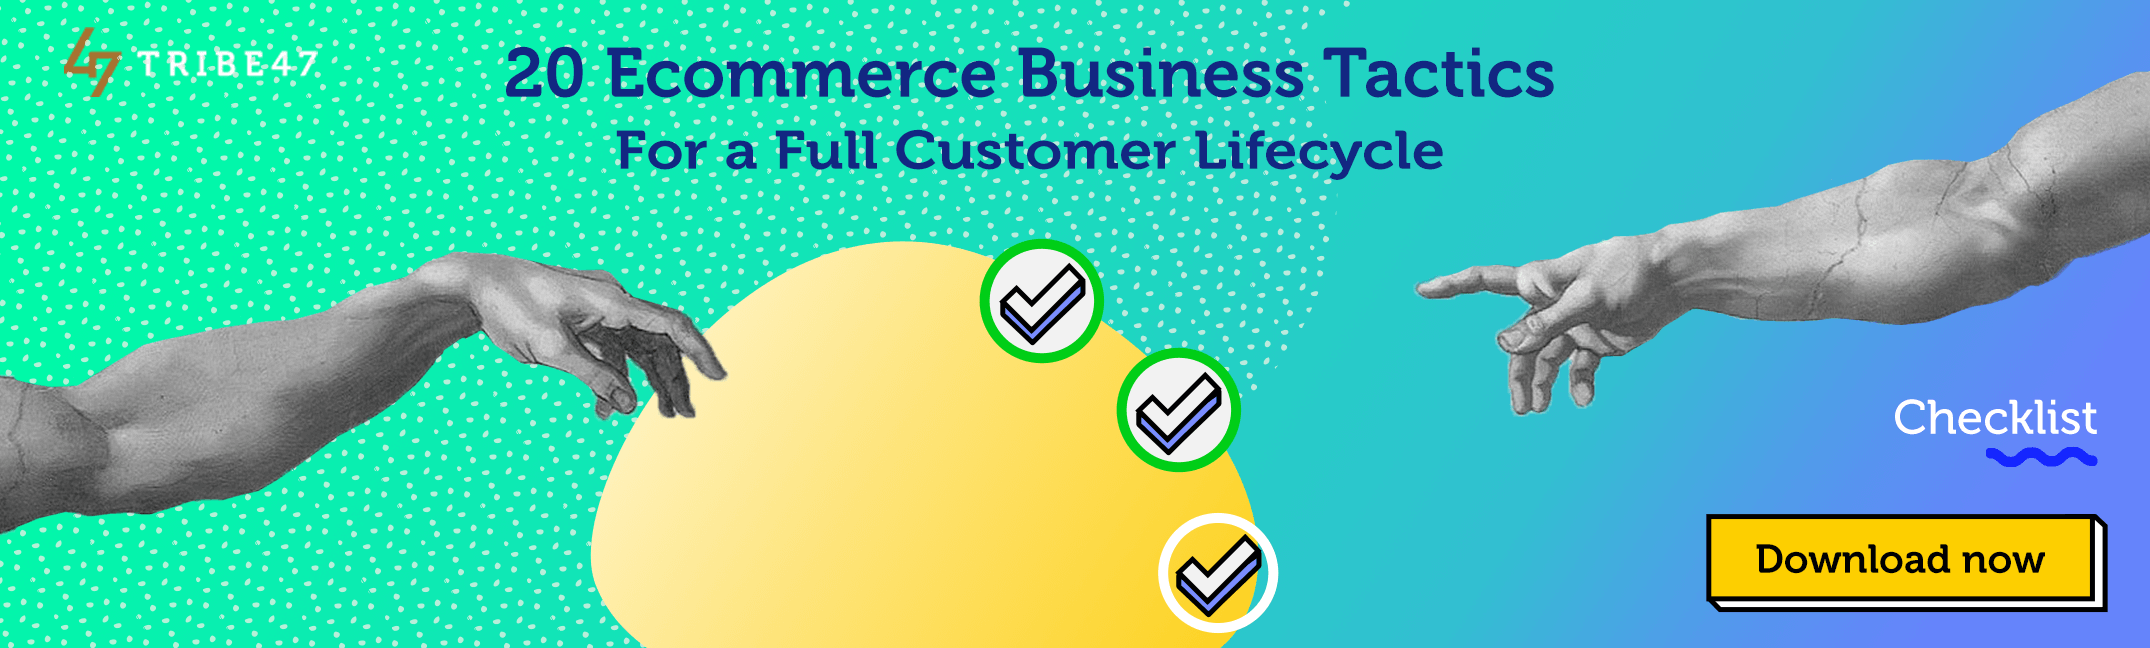 20 Ecommerce Business Tactics For A Full Customer Lifecycle